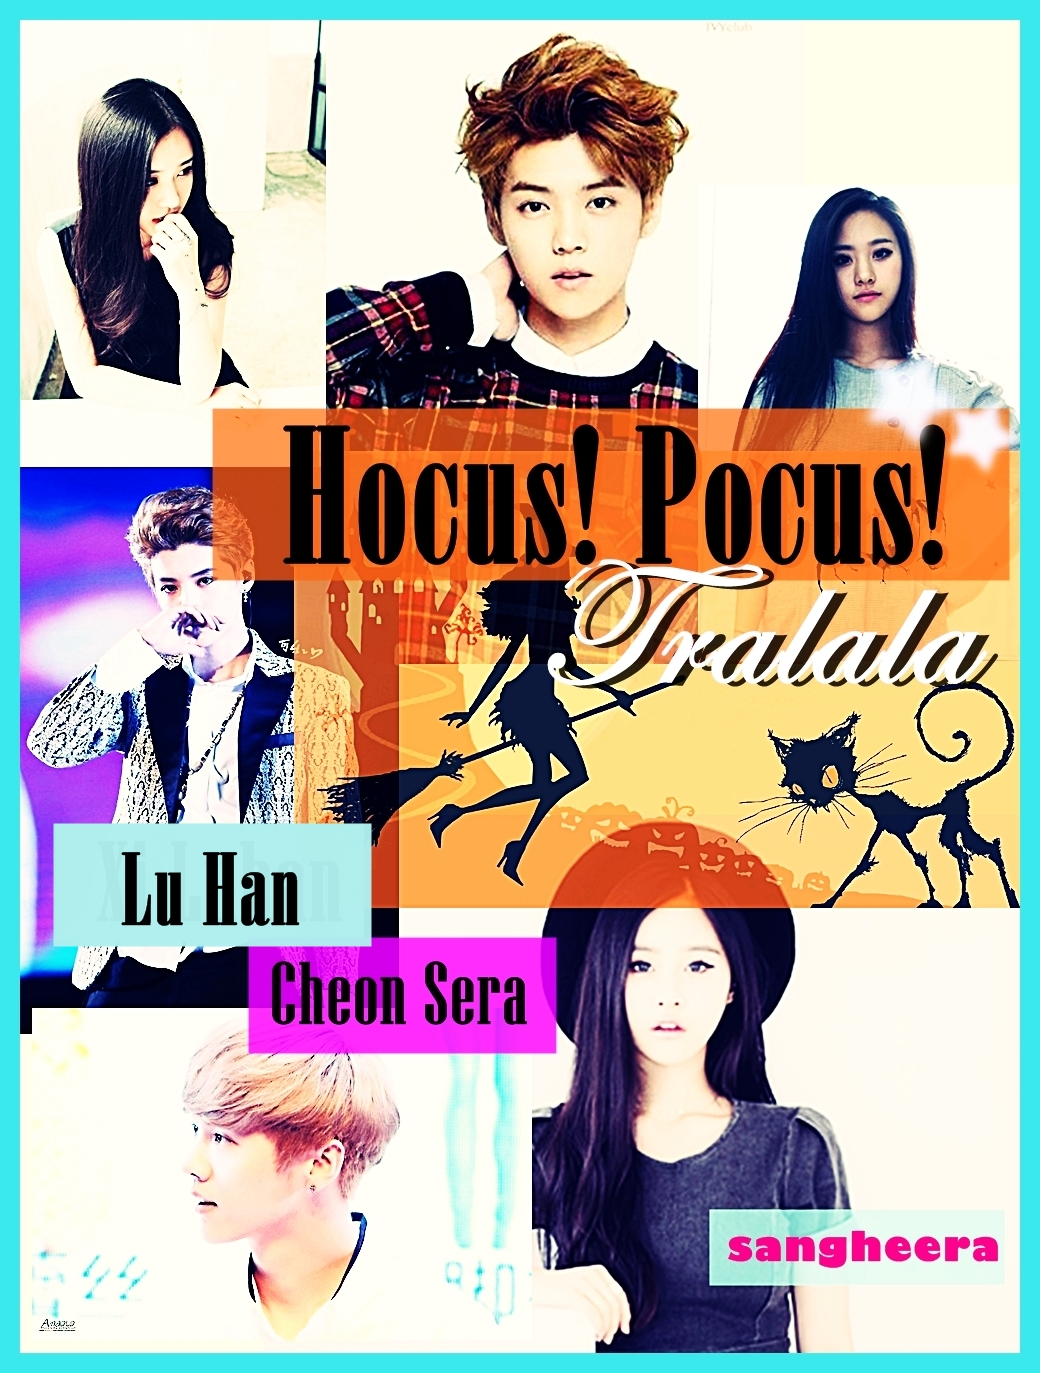 Luseras Story Hocus Pocus TRALALA SAY KOREAN FANFICTION